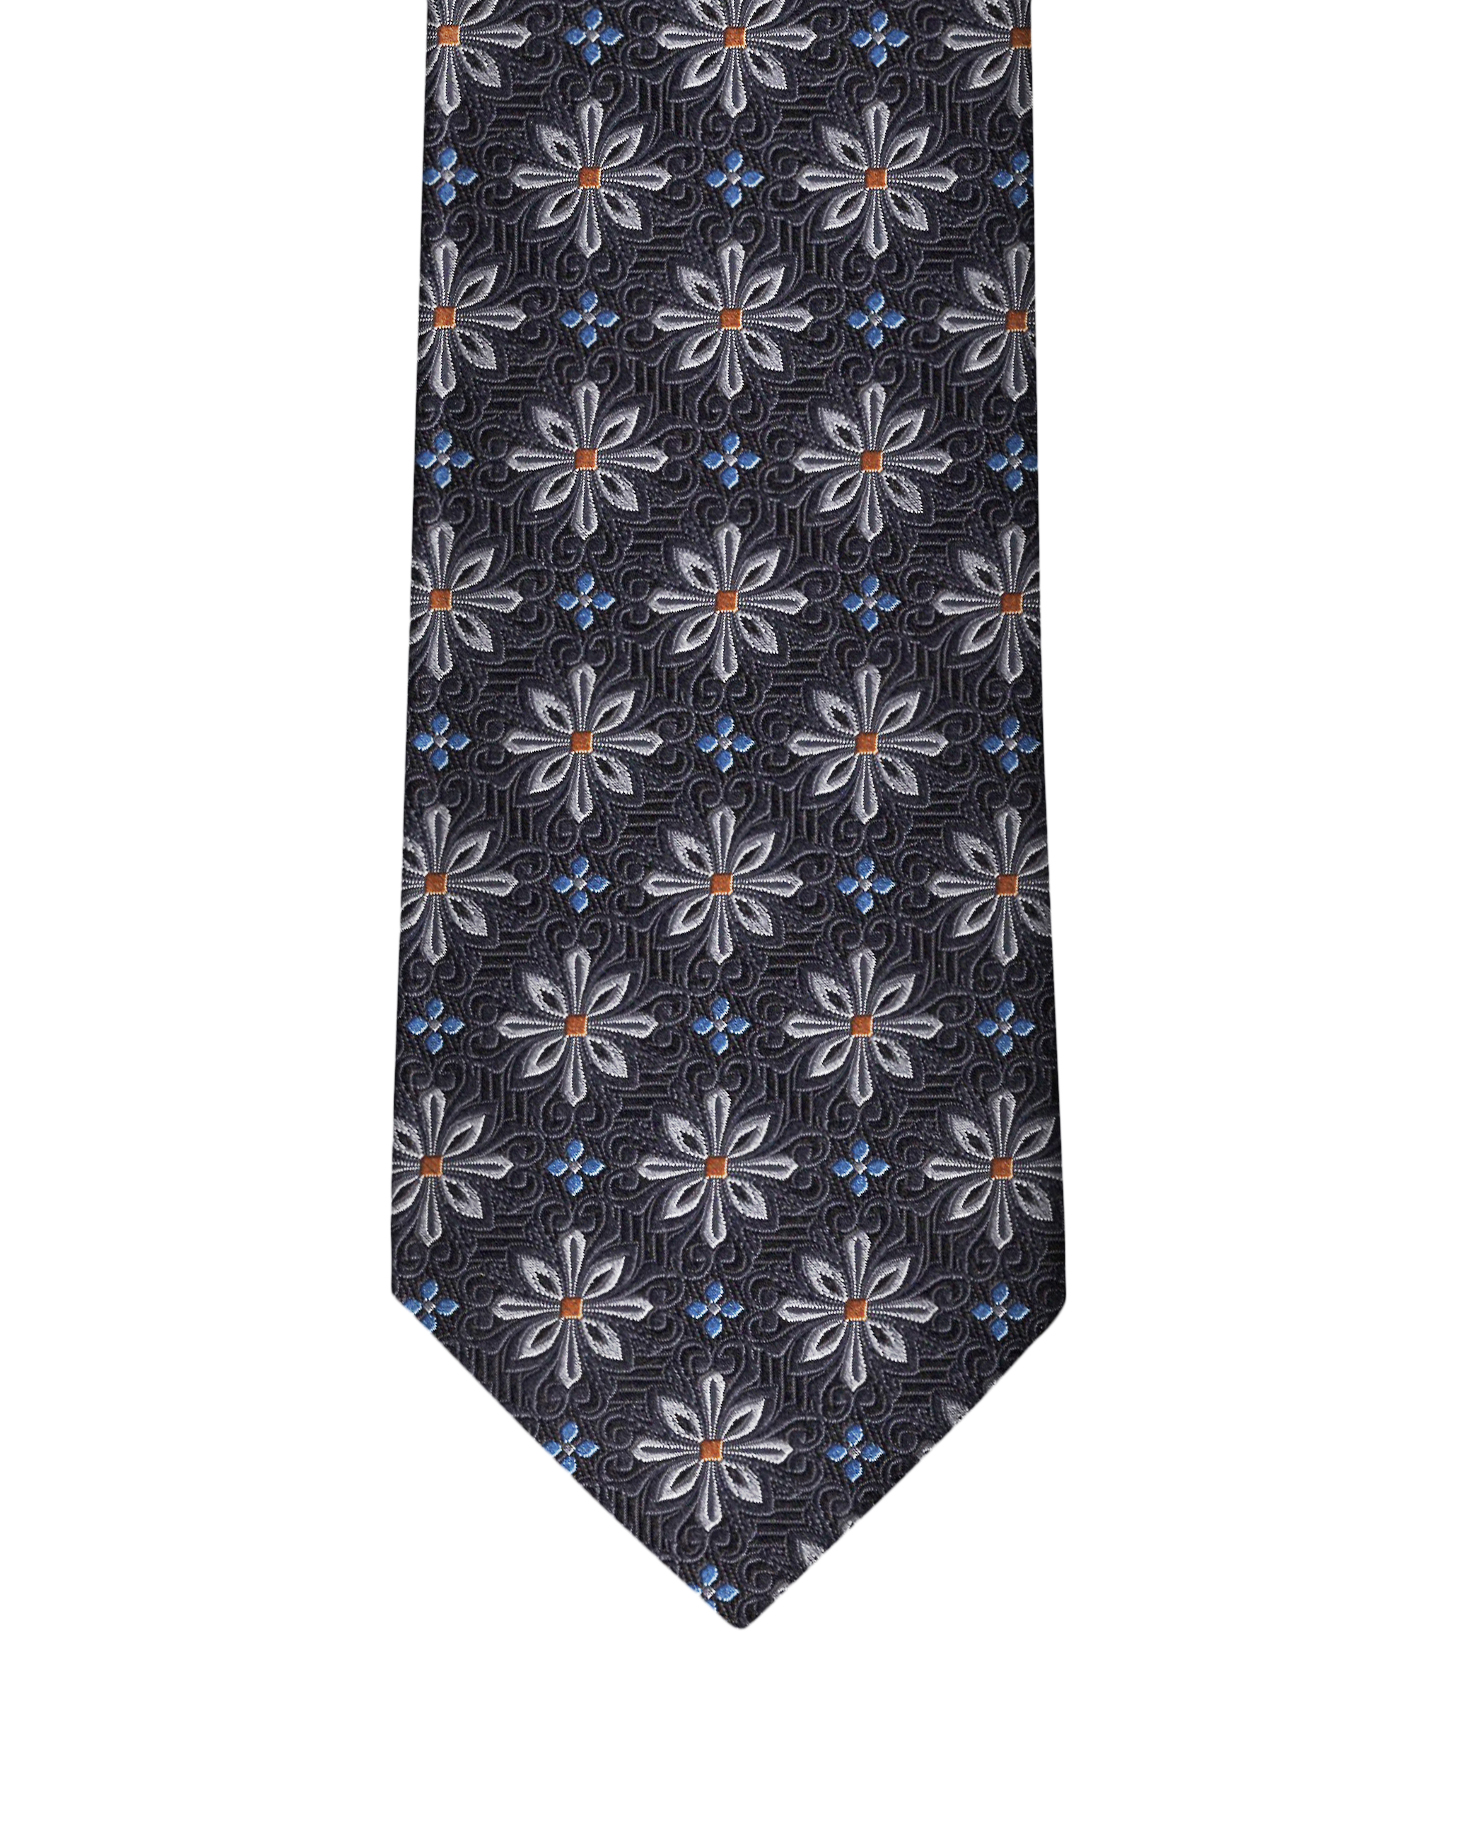 Grey Medallion Necktie